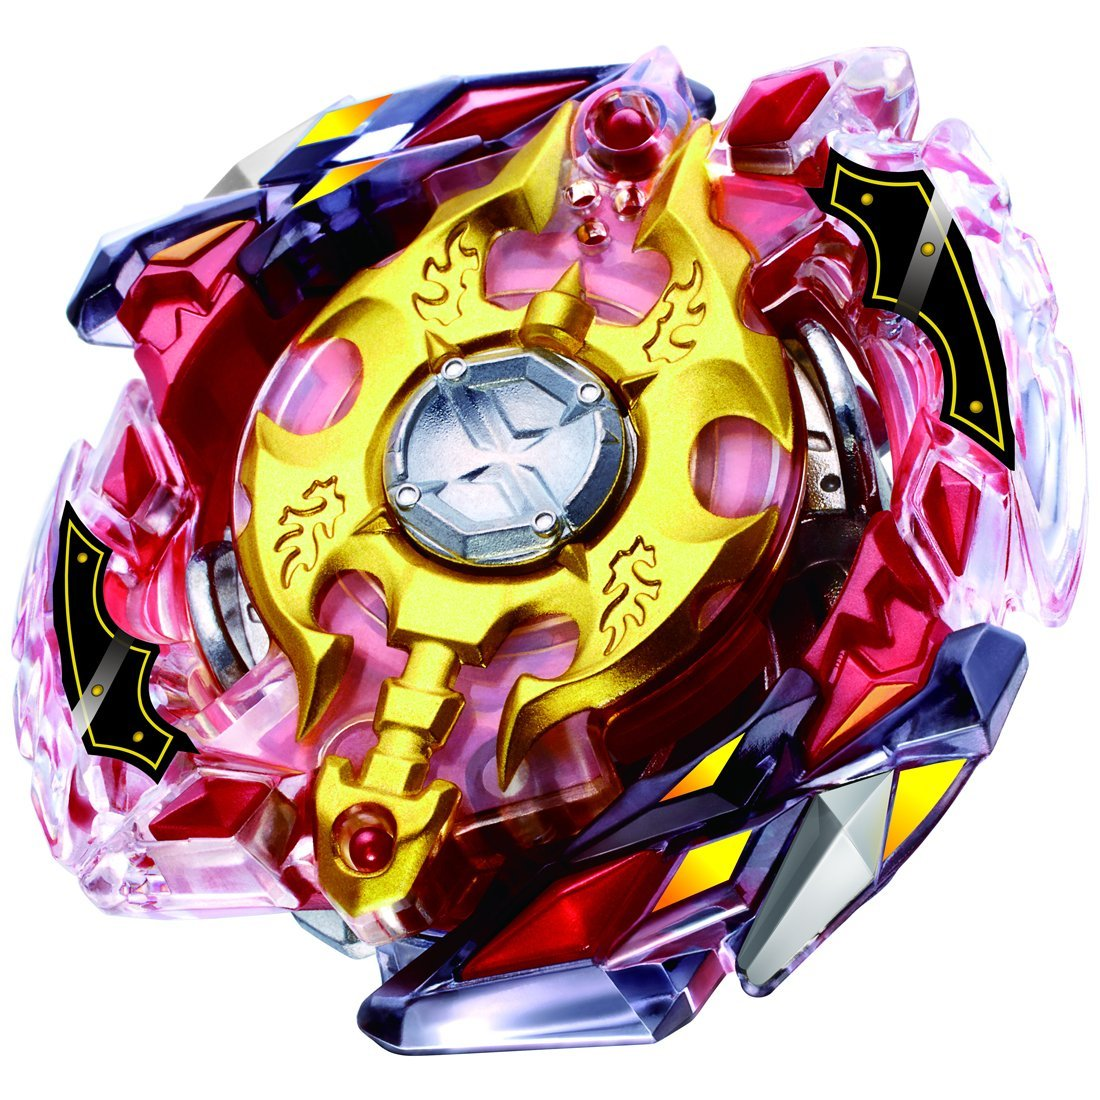 Legend spryzen s3 7 merge beyblade wiki fandom powered by wikia - Toupi blade blade ...